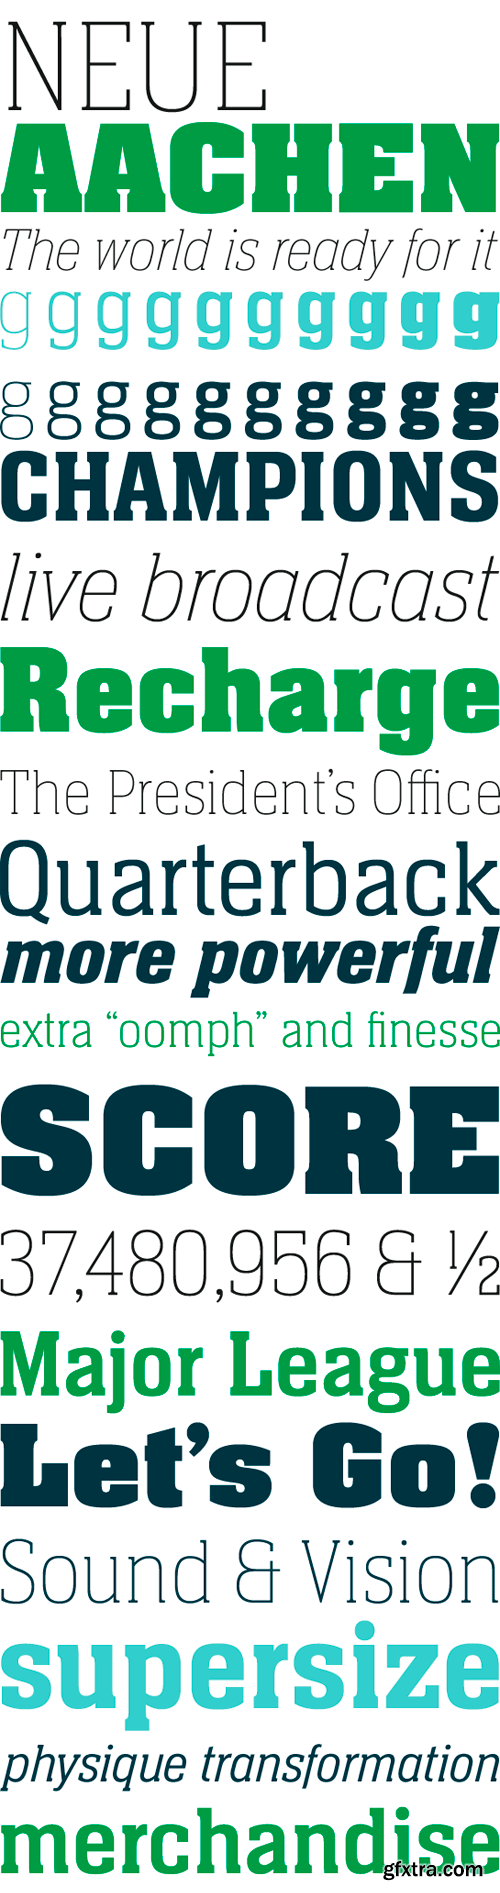 Neue Aachen Font Family - 18 Fonts for $630